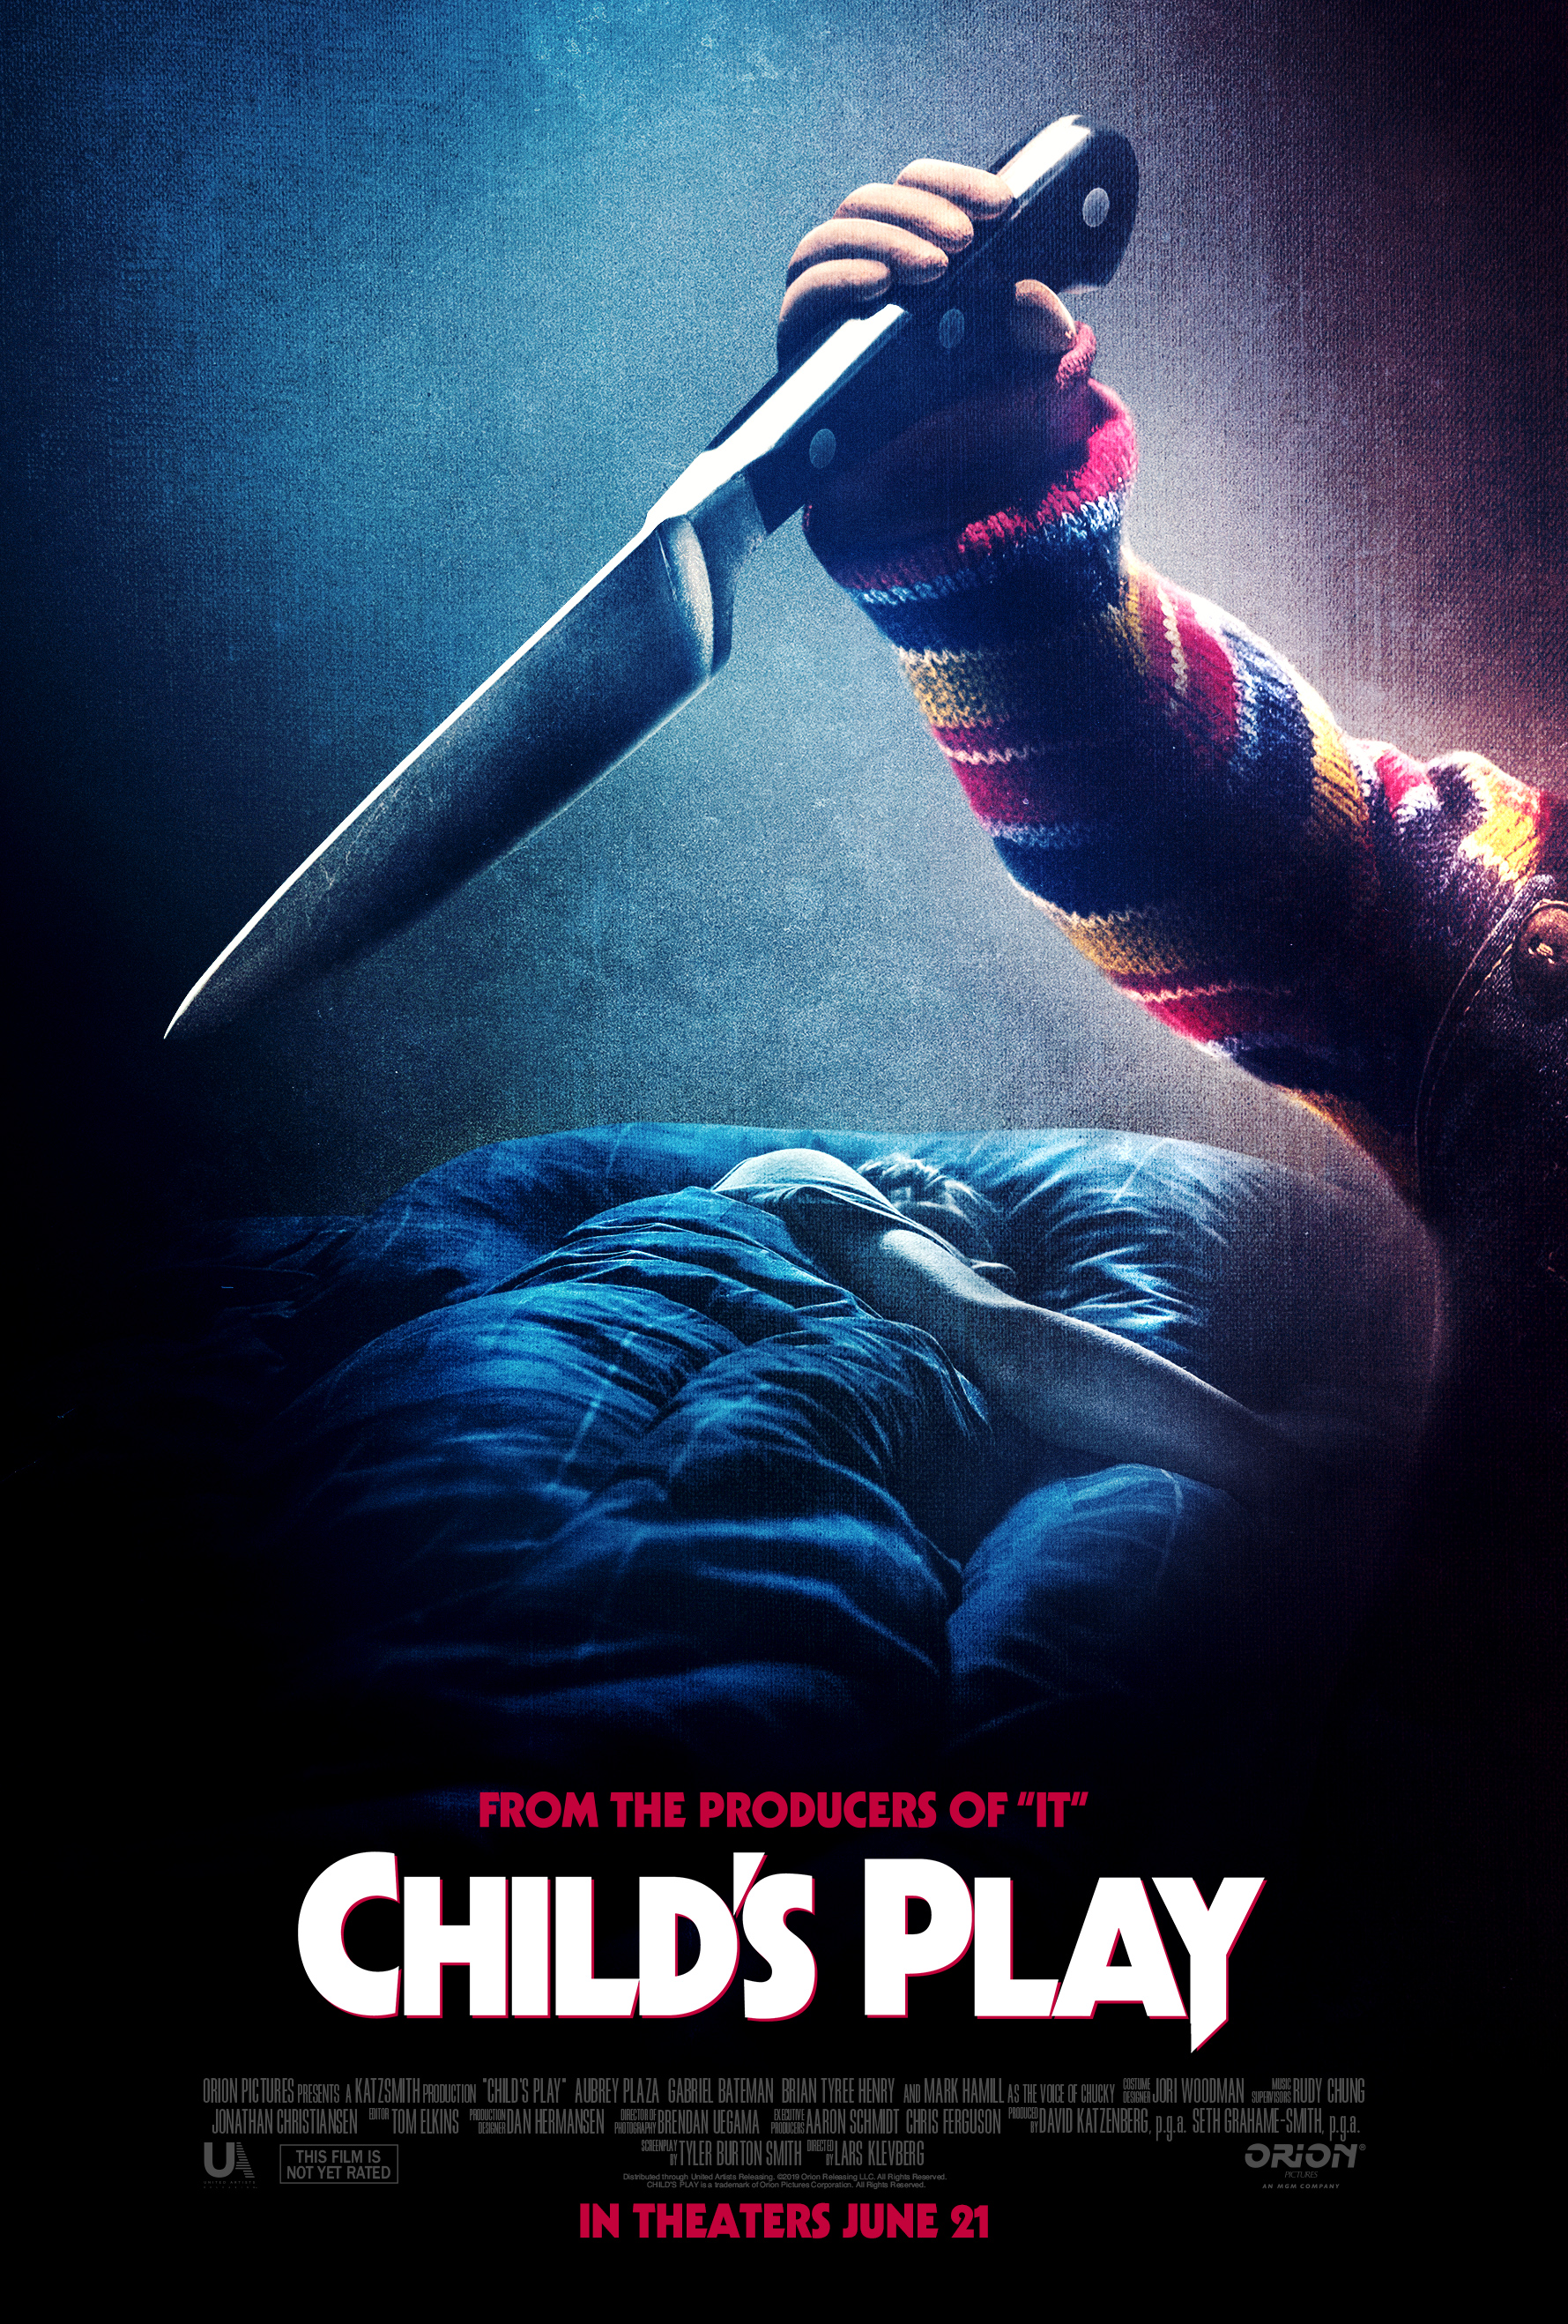 Image result for childs play movie poster 2019